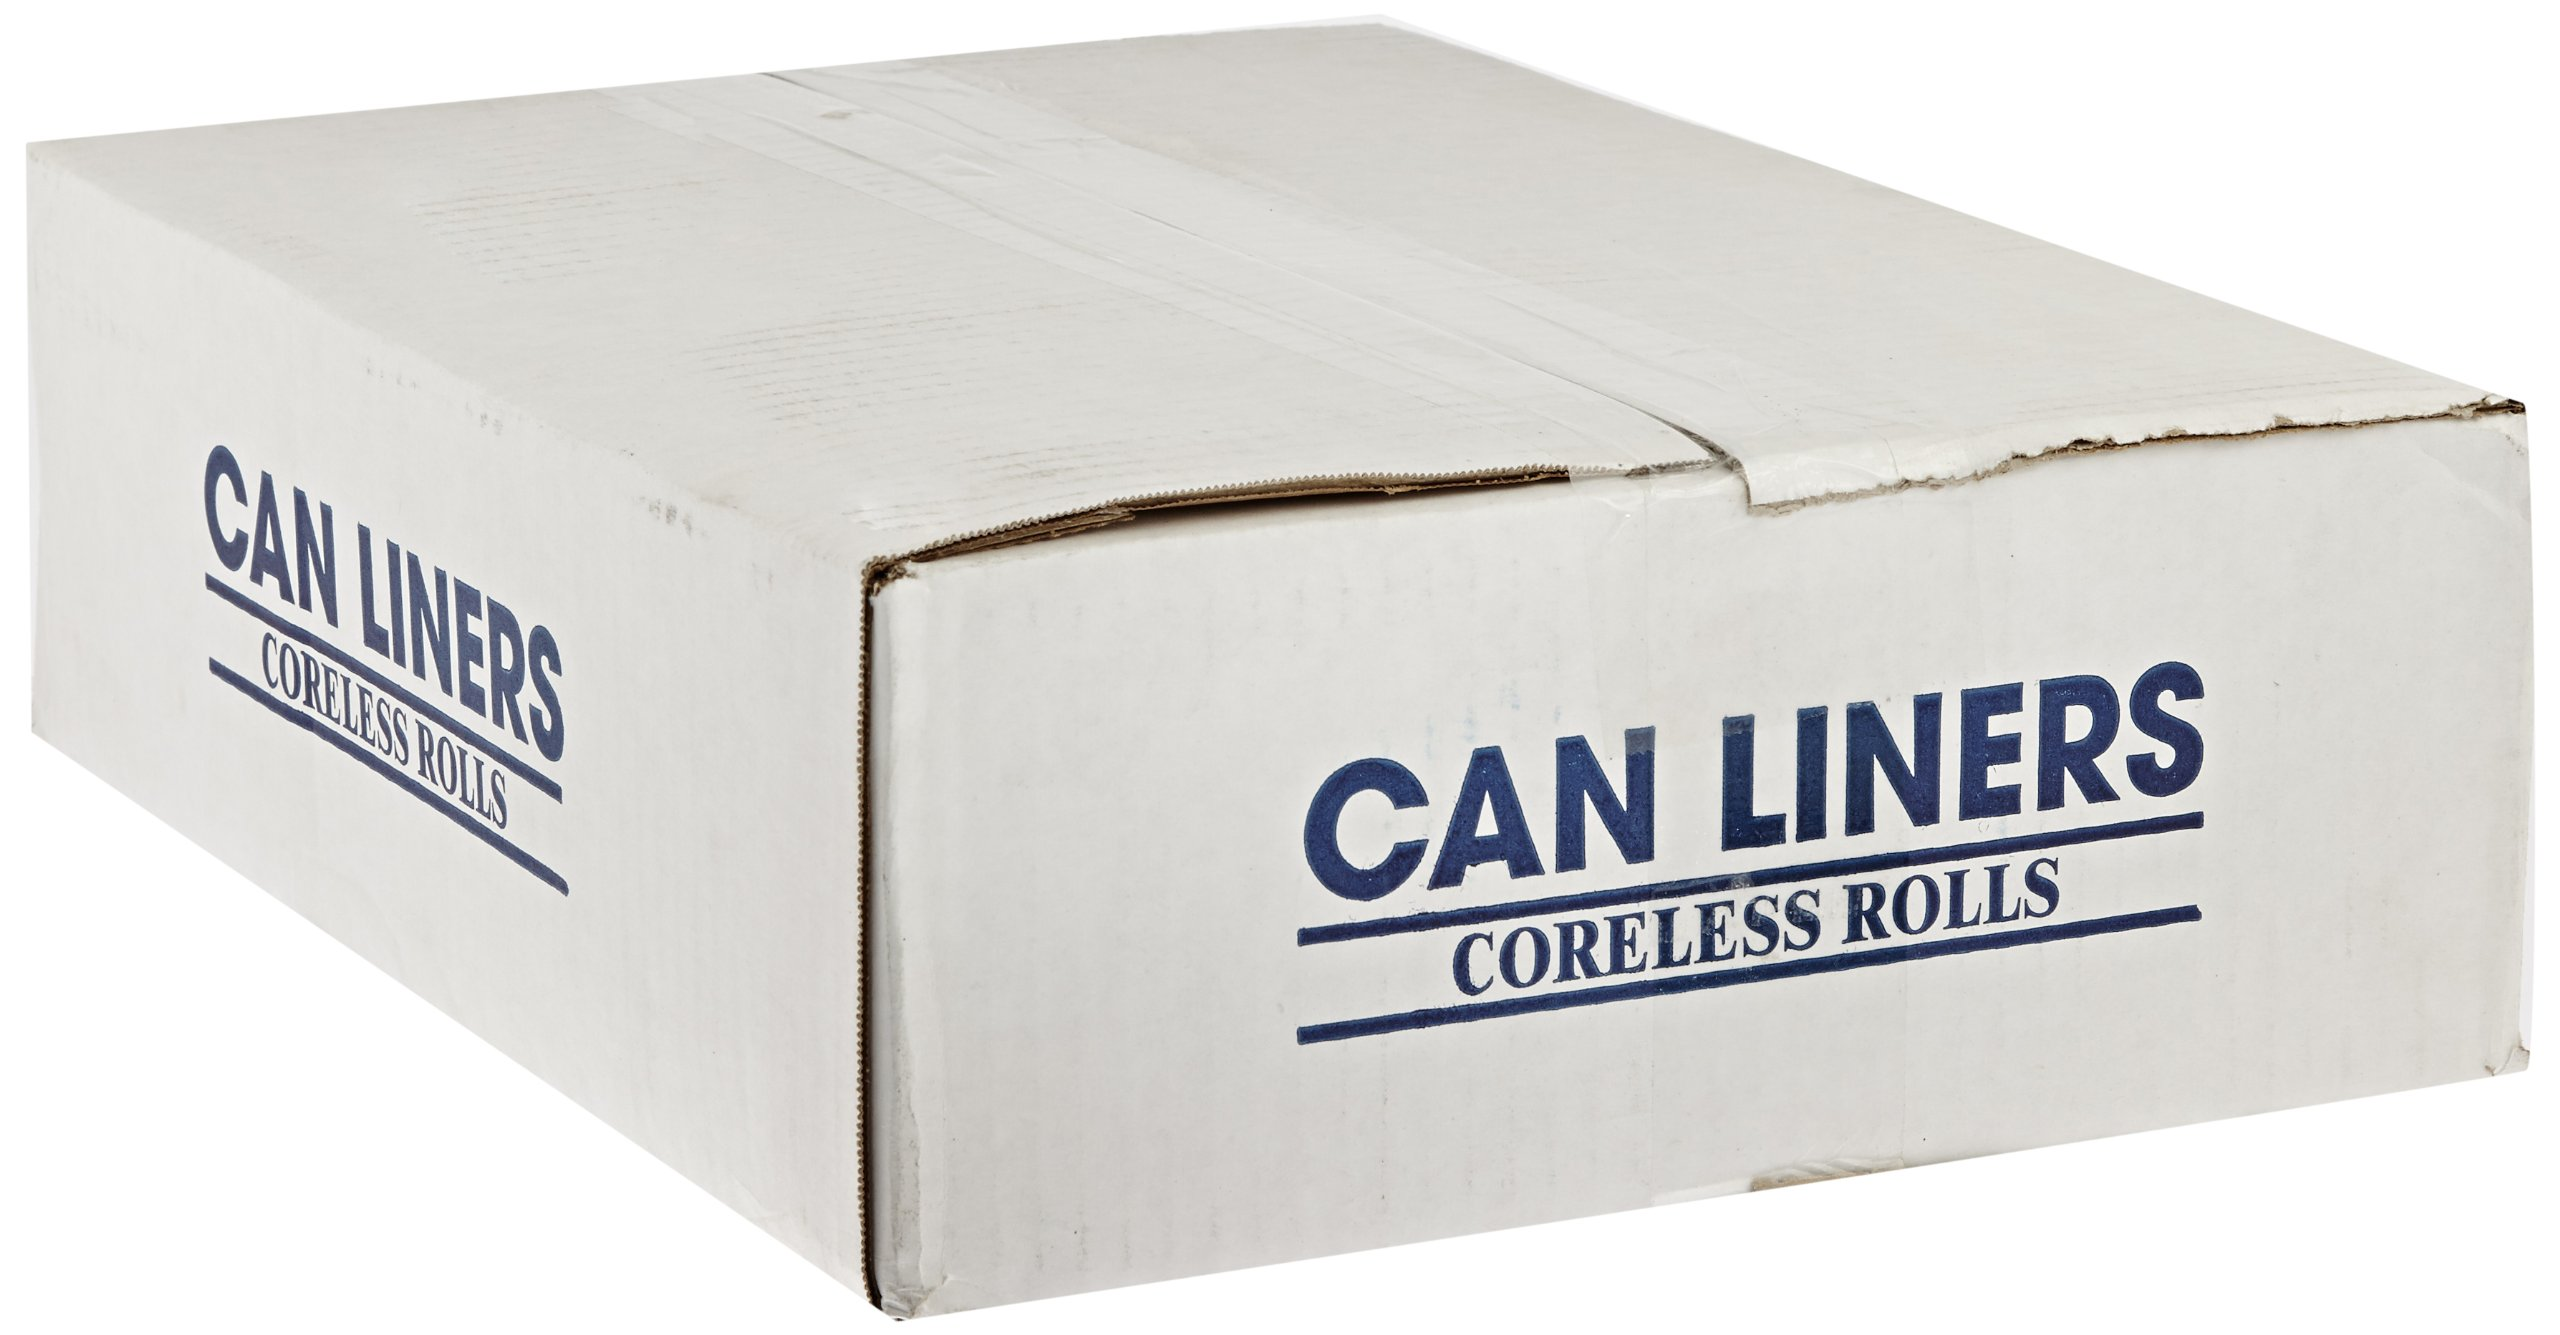 Spectrum CAMZ243308N CP243308N HDPE Institutional Trash Can Liner, 12-16 gallon Capacity, 33'' Length x 24'' Width x 8 micron Thick, Natural (Case of 1000)